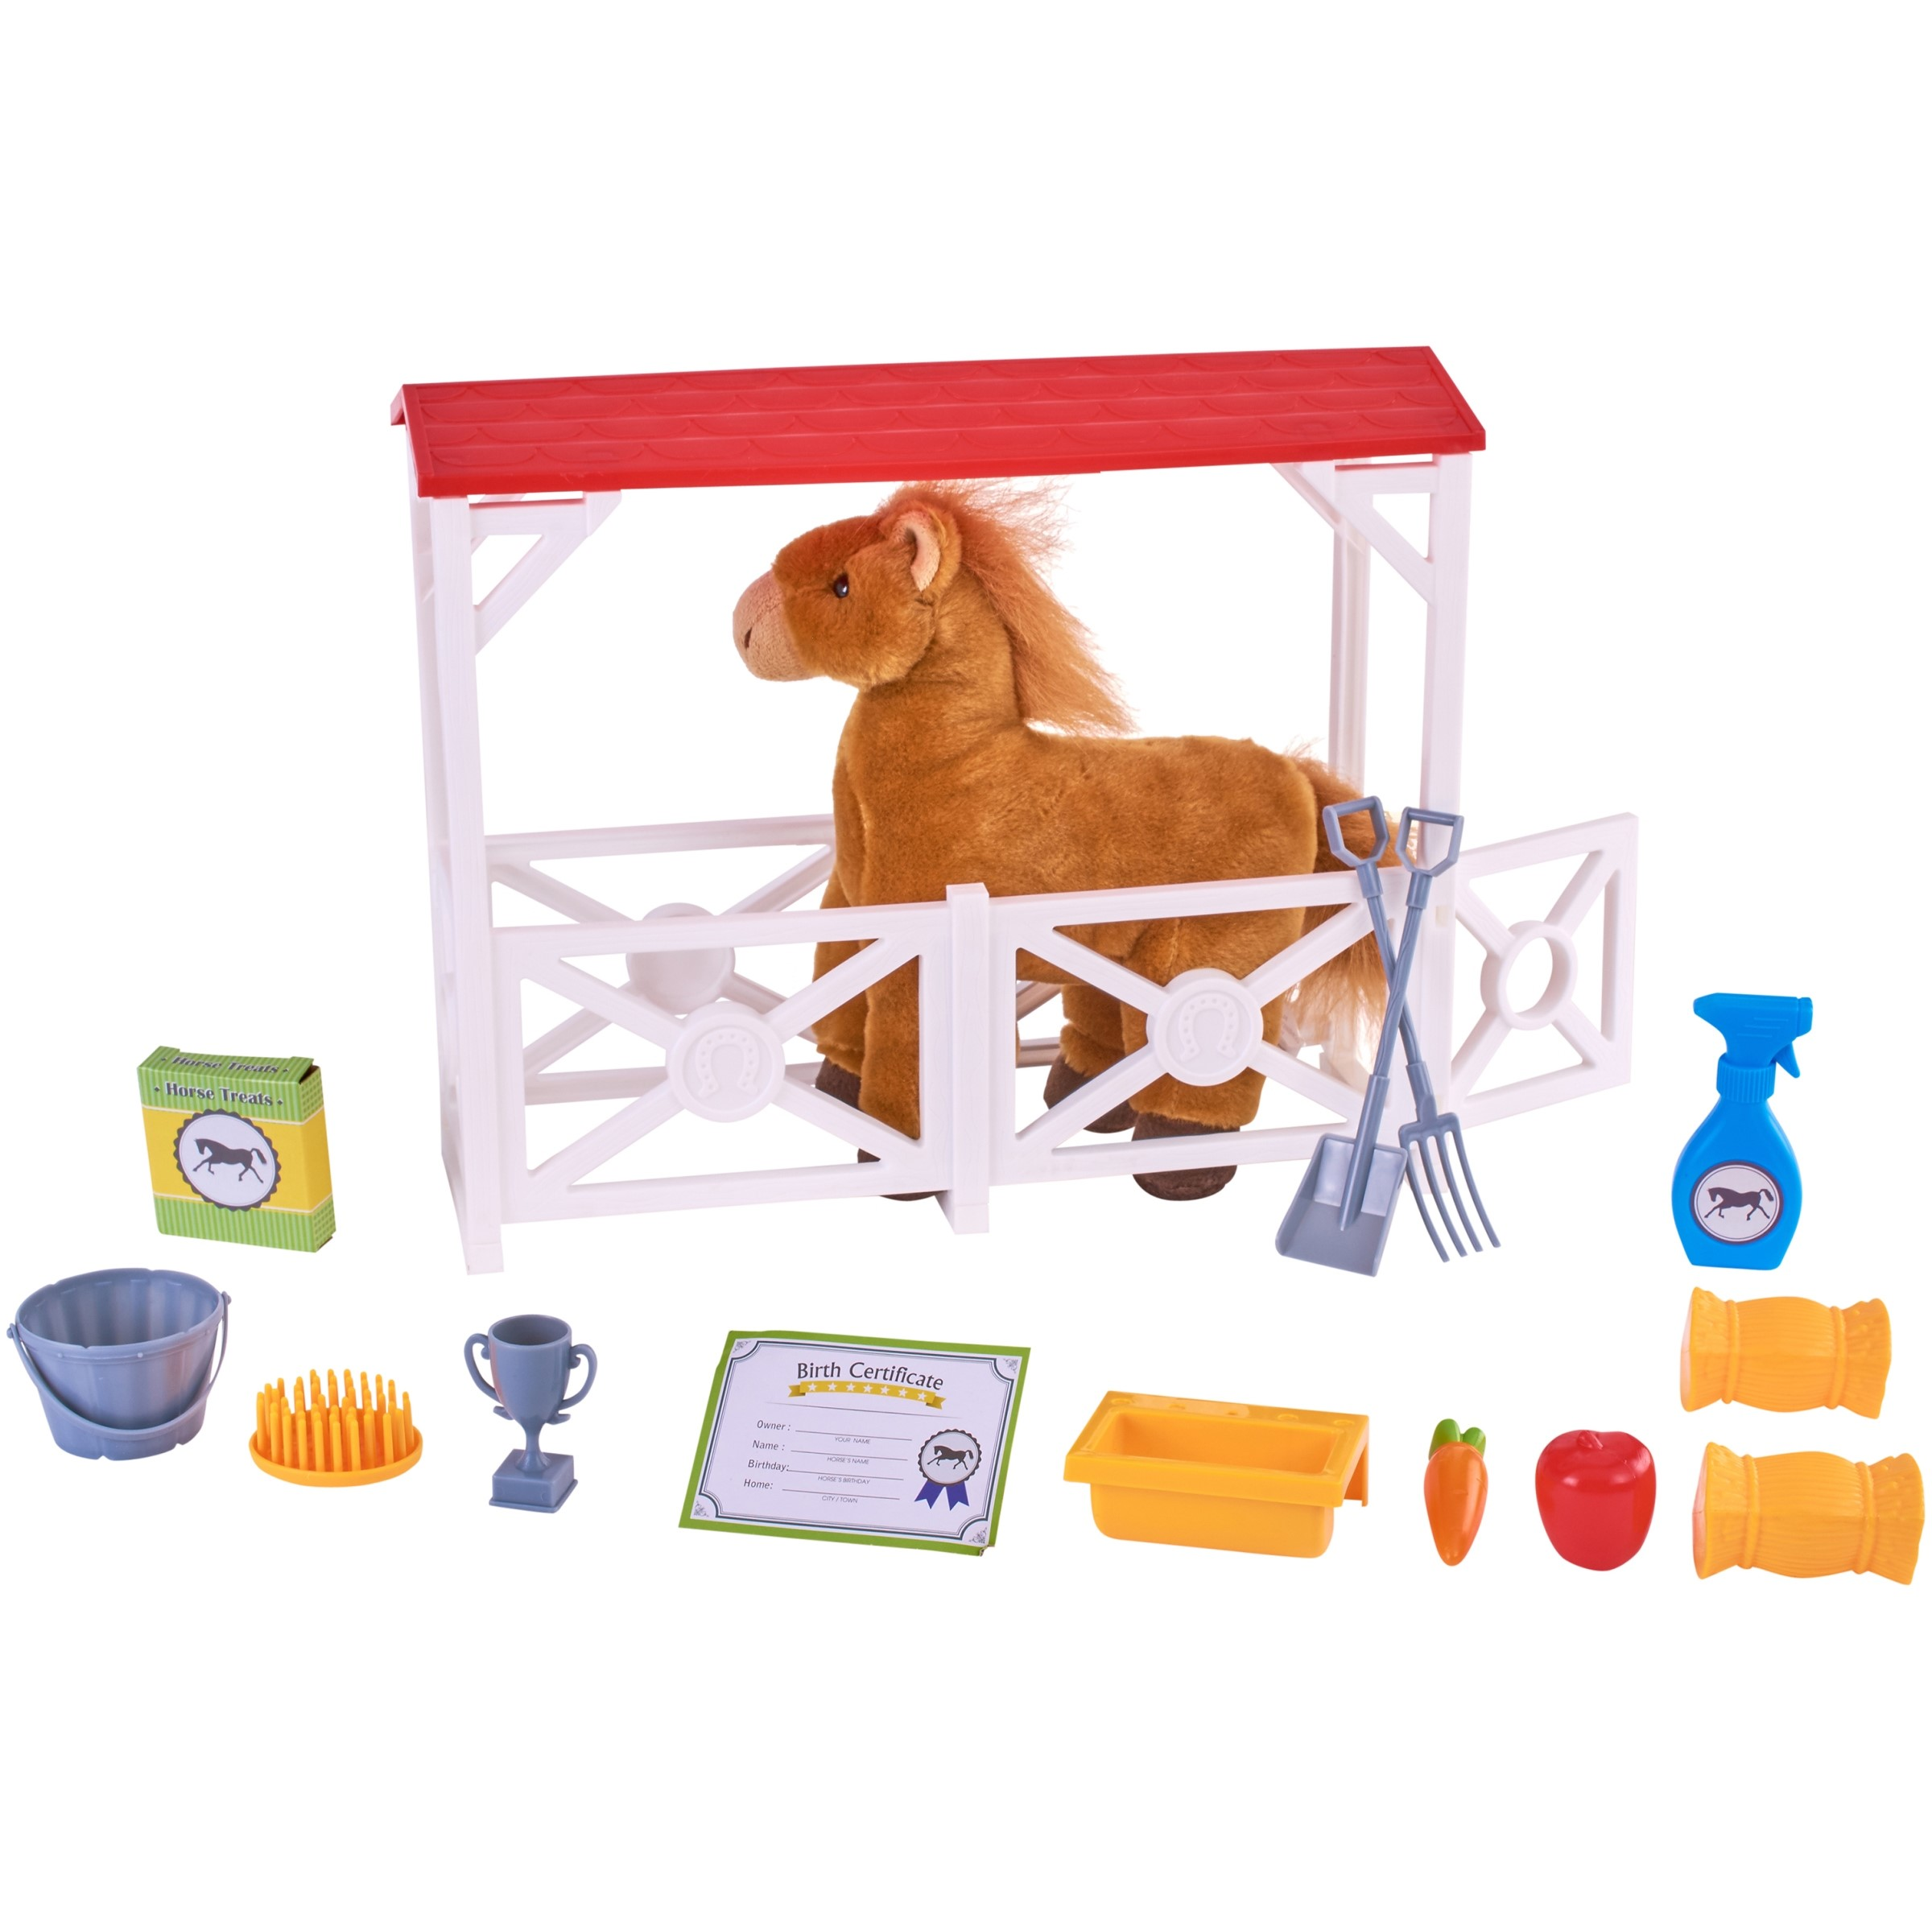 Stable with Horses Farm Barn Play Set Kid Pretend Play Toy Action Figure Playset